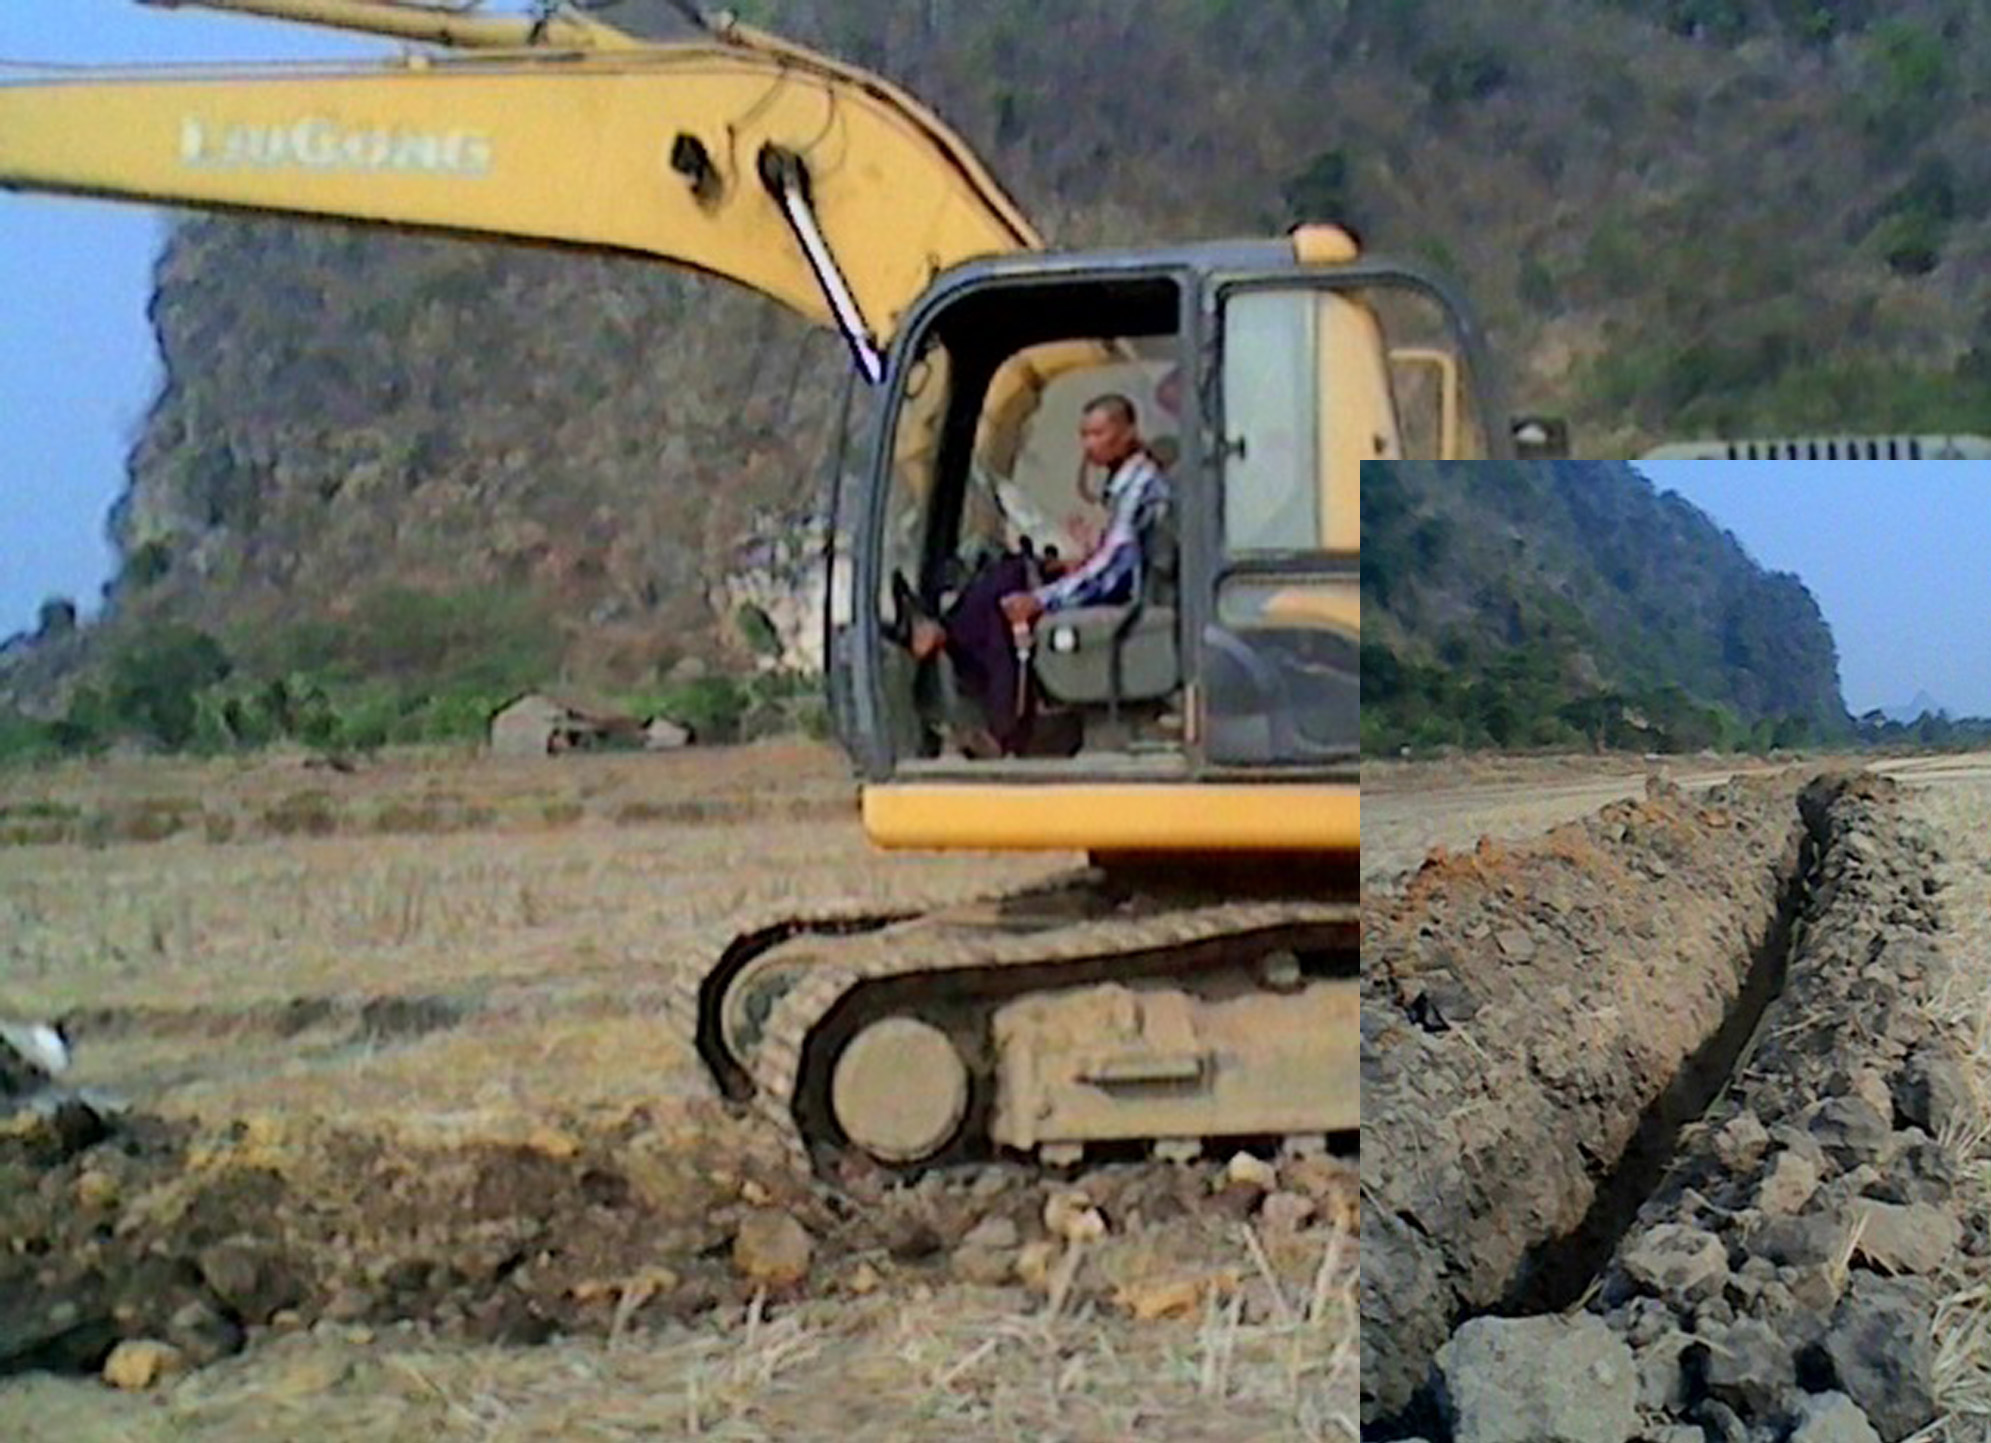 Photo of MPT and Telenor Telephone Companies Fail to Get Permission – Run Cable Tunnels Through Farm Lands and Homeyards